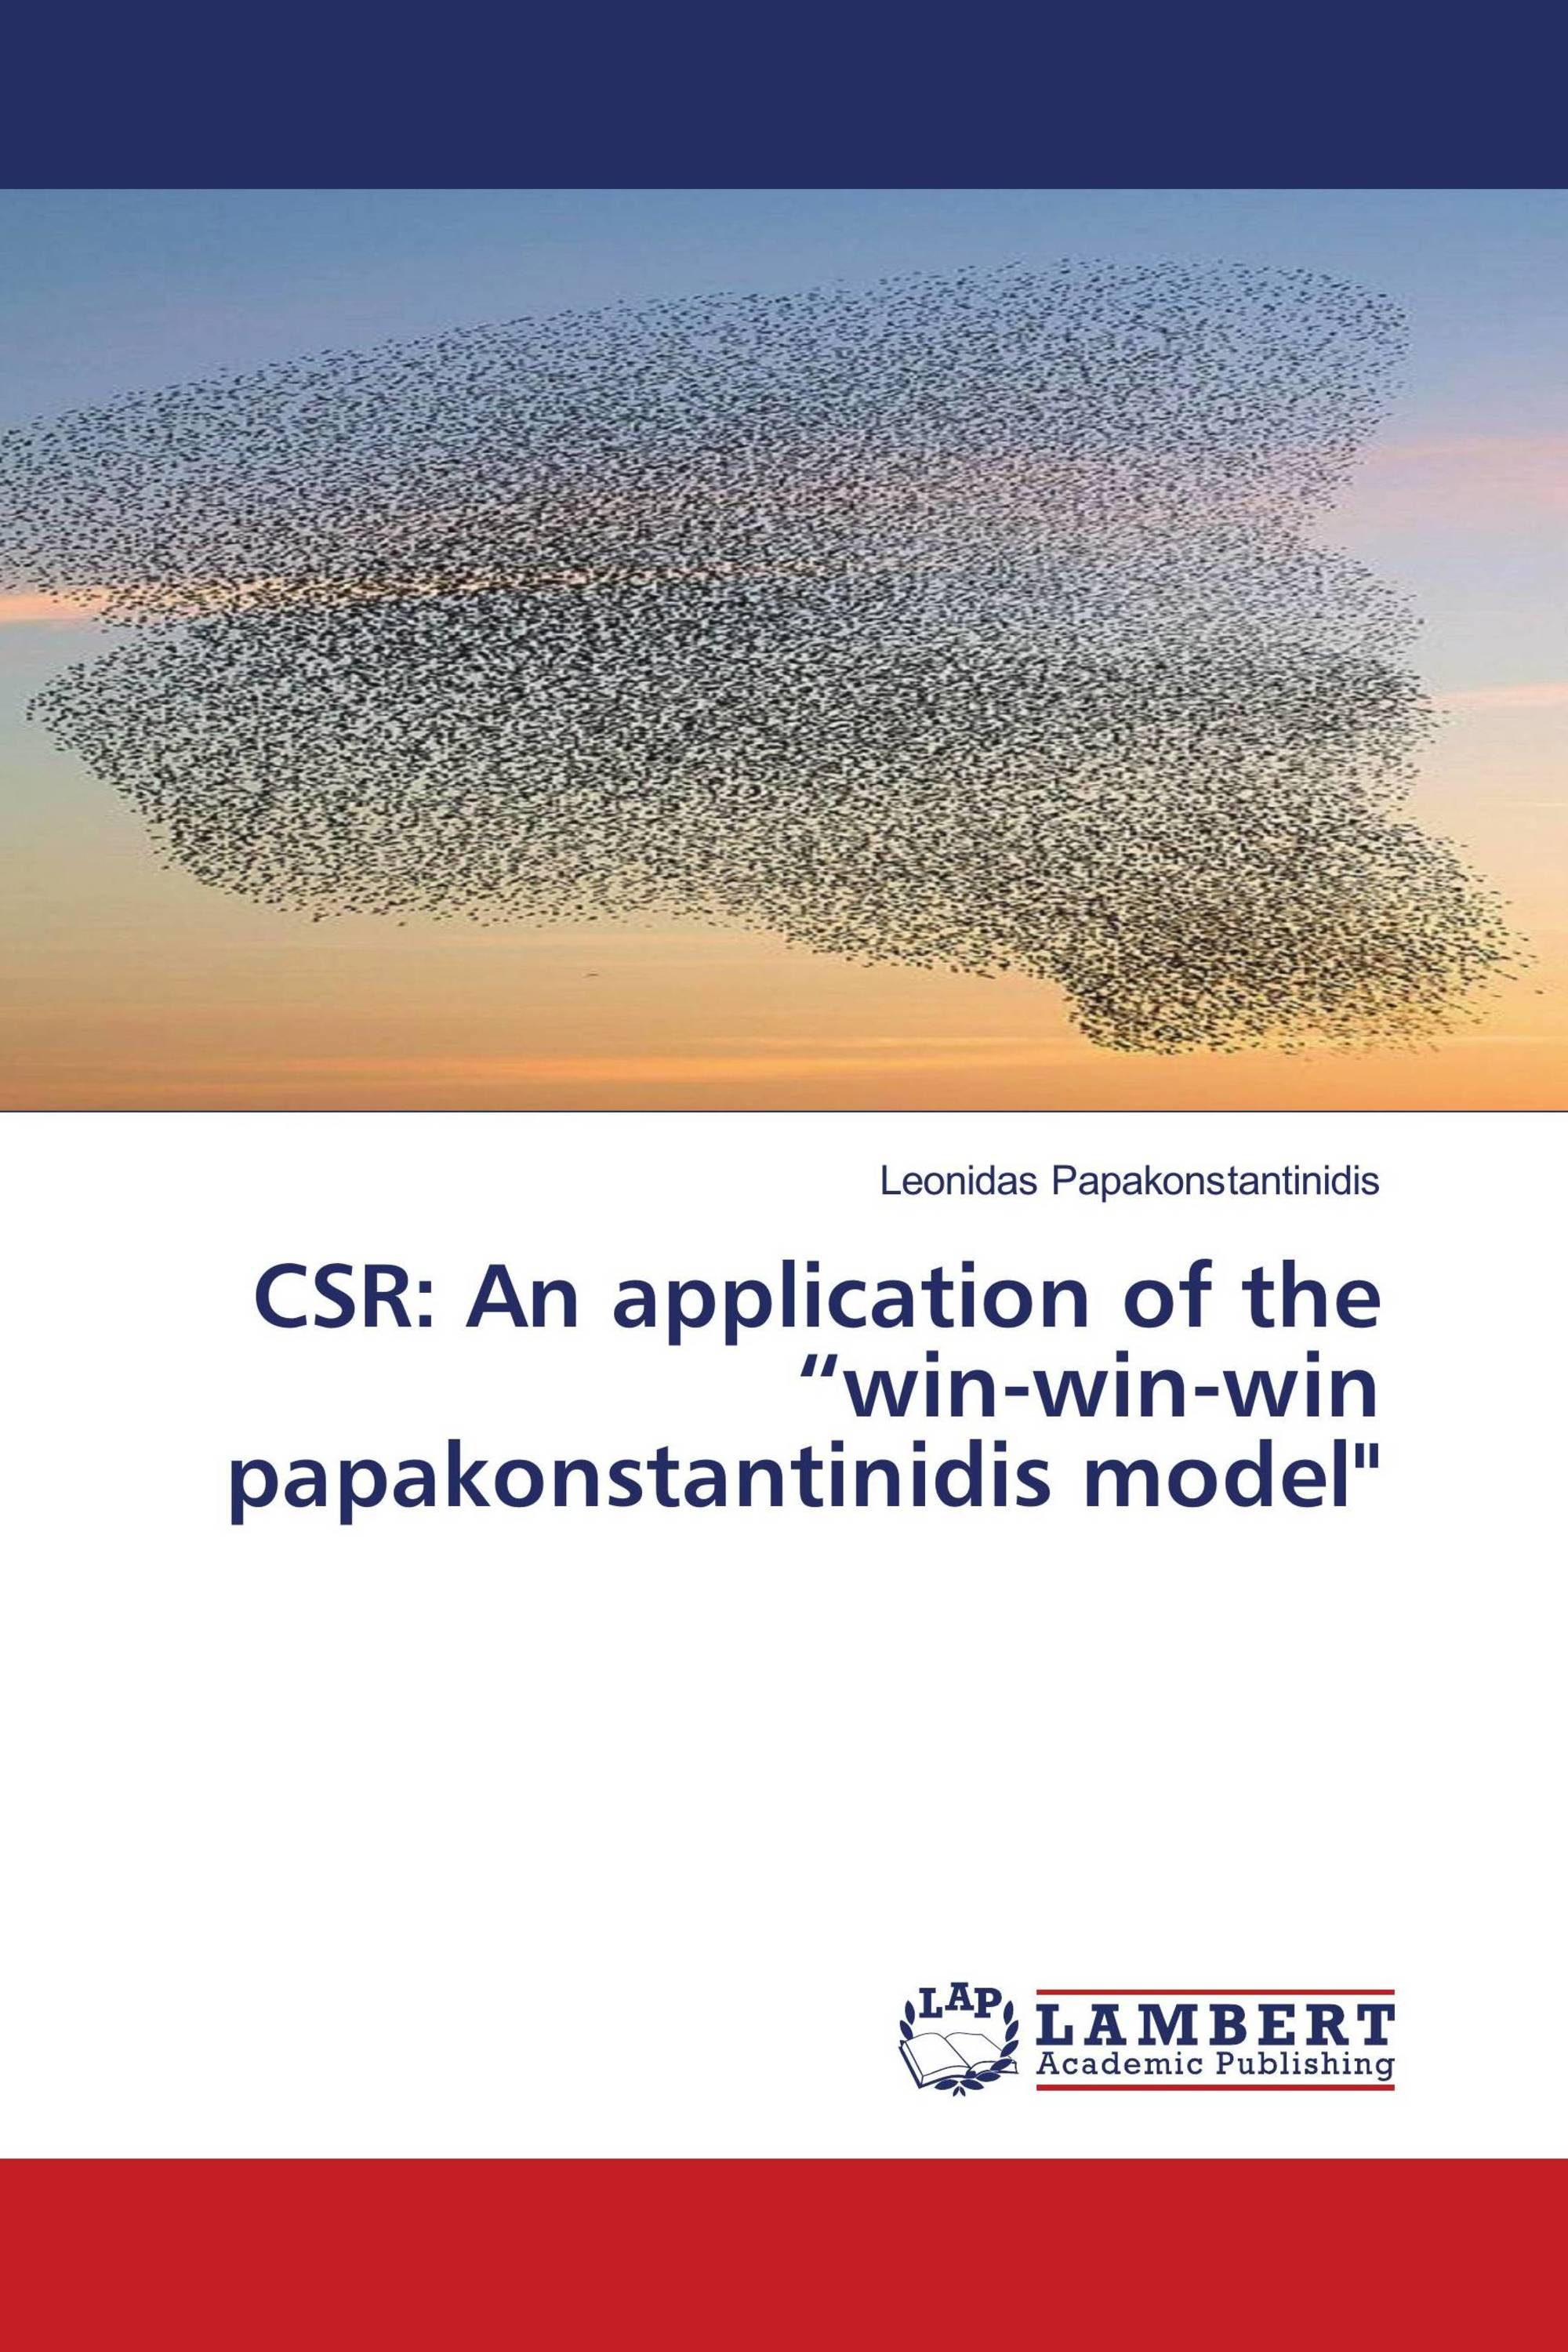 "CSR: An application of the ""win-win-win papakonstantinidis model"""